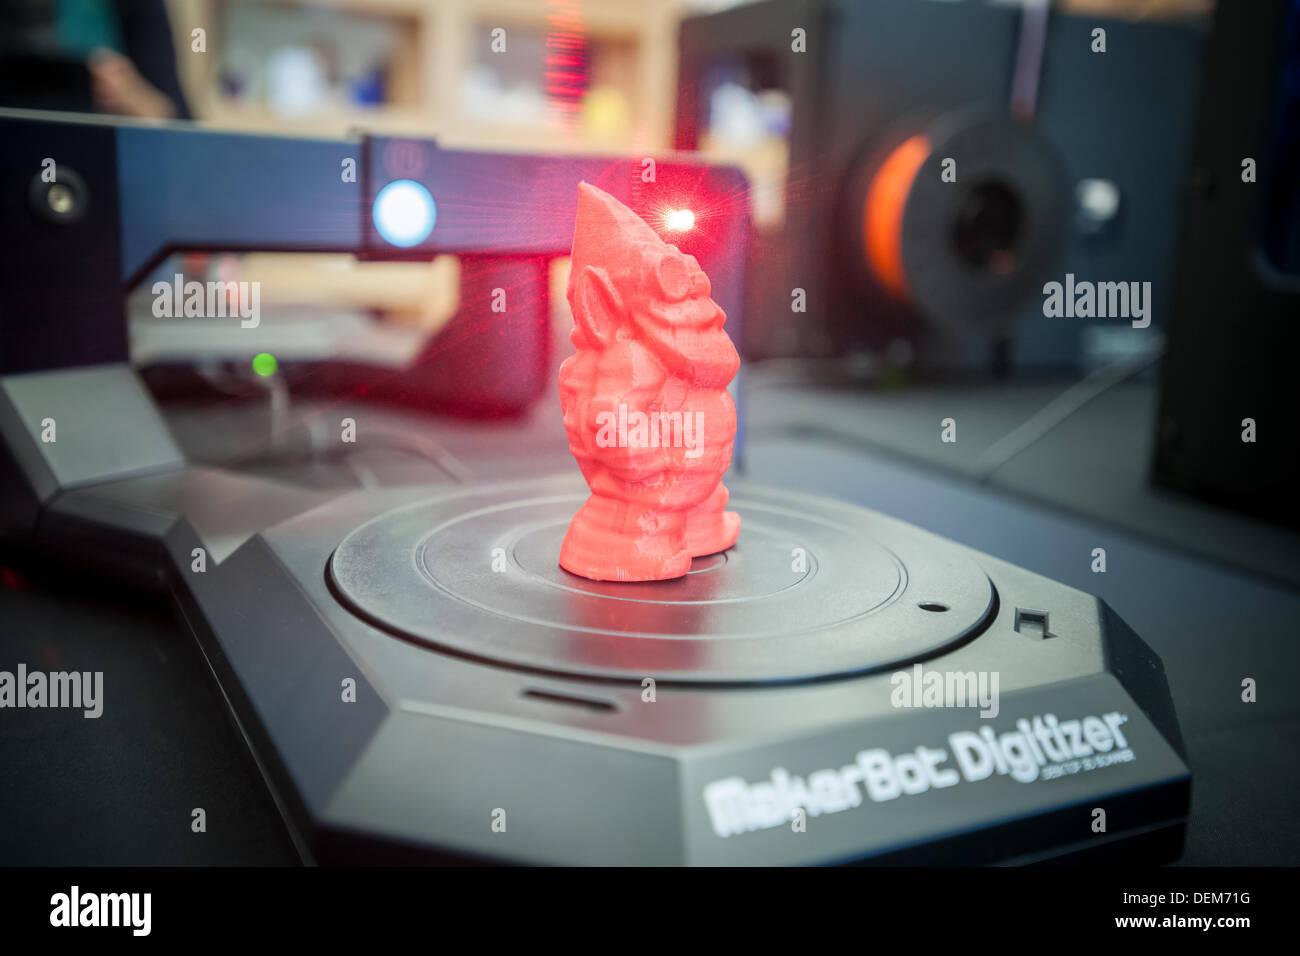 New York, USA. 20th September 2013. A MakerBot Industries MakerBot Digitizer Desktop 3D scanner scans a gnome figure in the MakerBot offices in New York on Friday, September 20, 2013. MakerBot introduced their $1400 MakerBot Digitizer Desktop 3D scanner which will enable users to scan objects up to 8X8X8 inches and print out duplicates on their $2199 Replicator 2 or another brand of 3D printer. Credit:  Richard Levine/Alamy Live News - Stock Image